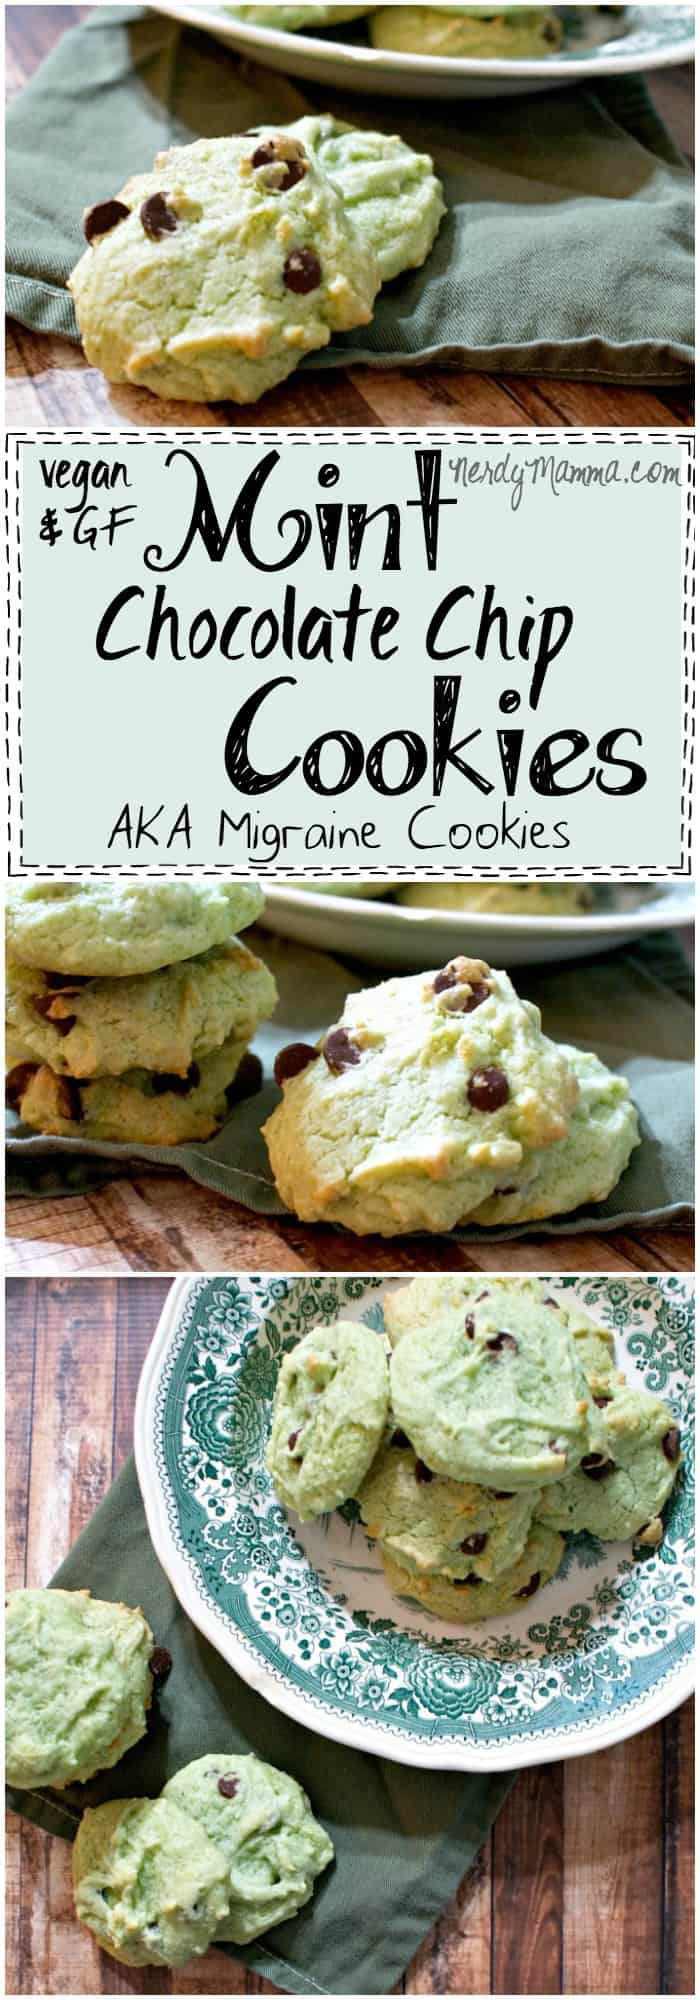 This recipe for Vegan and Gluten-Free Mint Chocolate Chip Cookies looks so easy! And I love the idea that these are migraine cookies. LOL!